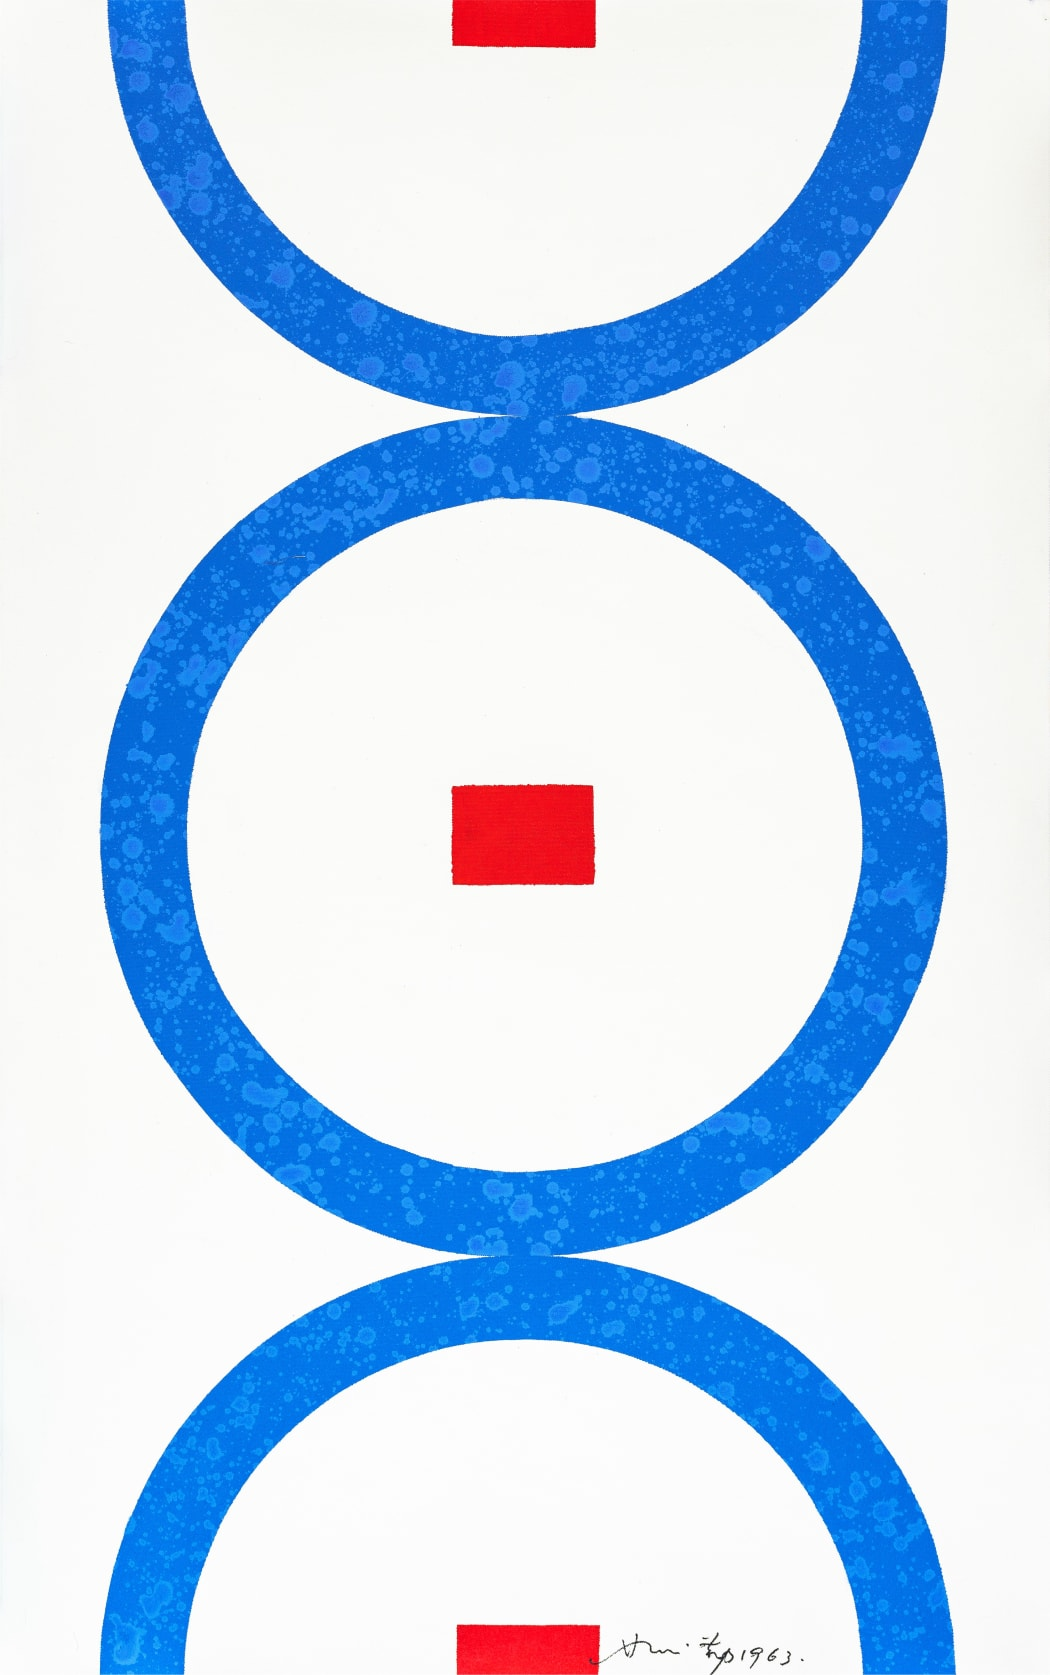 Hsiao Chin, The Cycles (Il Cicli), 1963, Acrylic on canvas, 120 x 76 cm